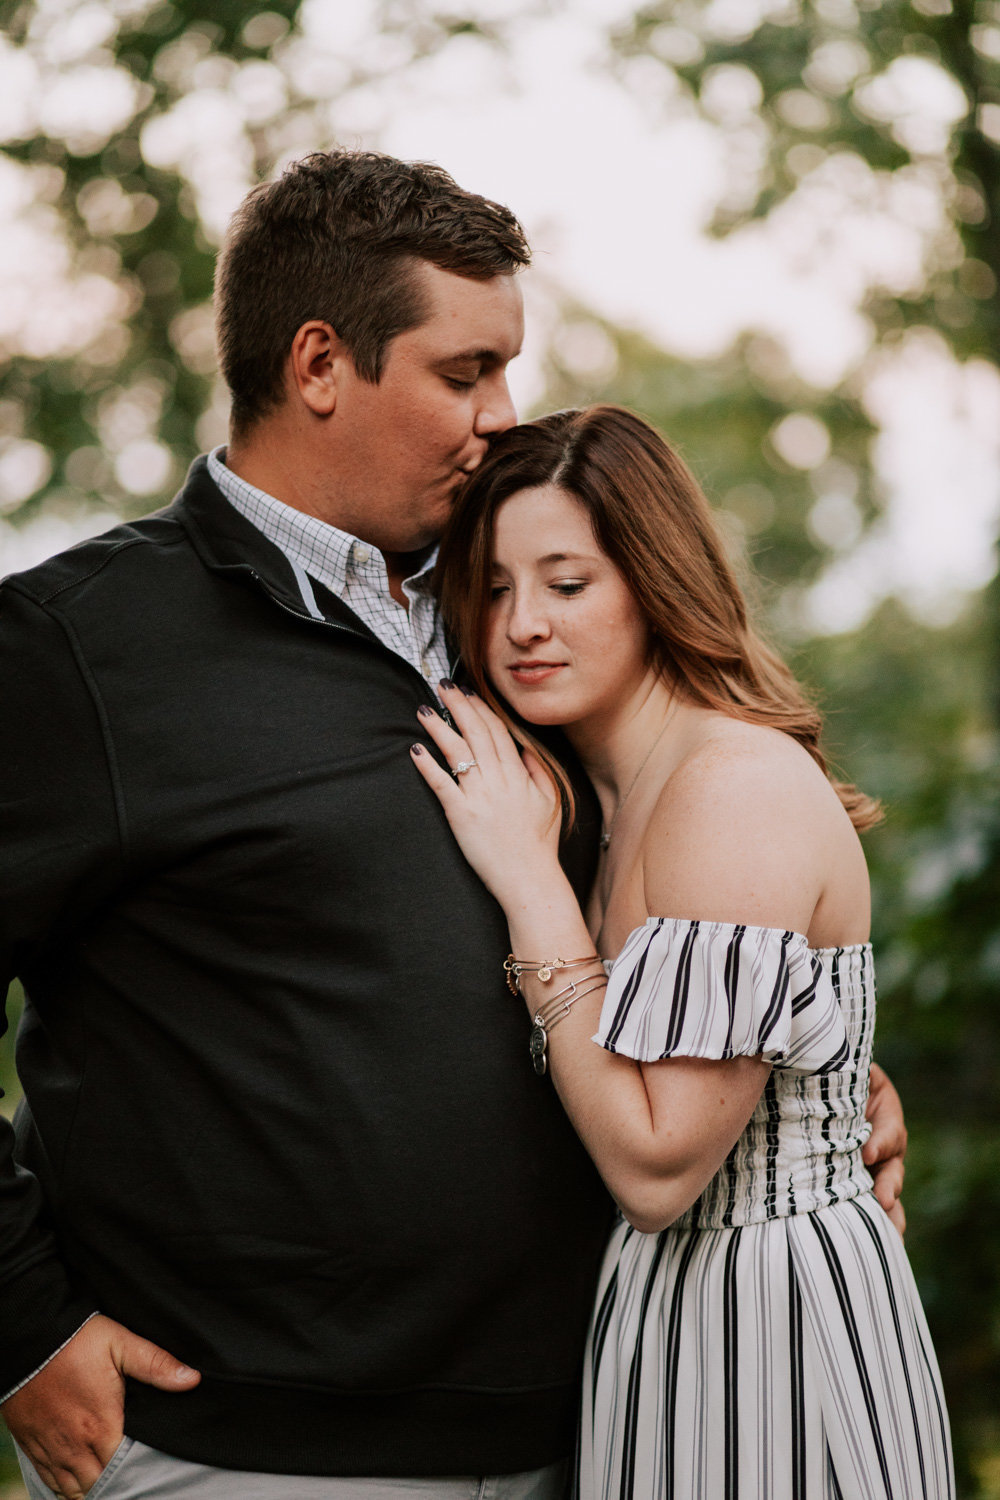 Engagement-Photographer-Lafayette-Indiana-39